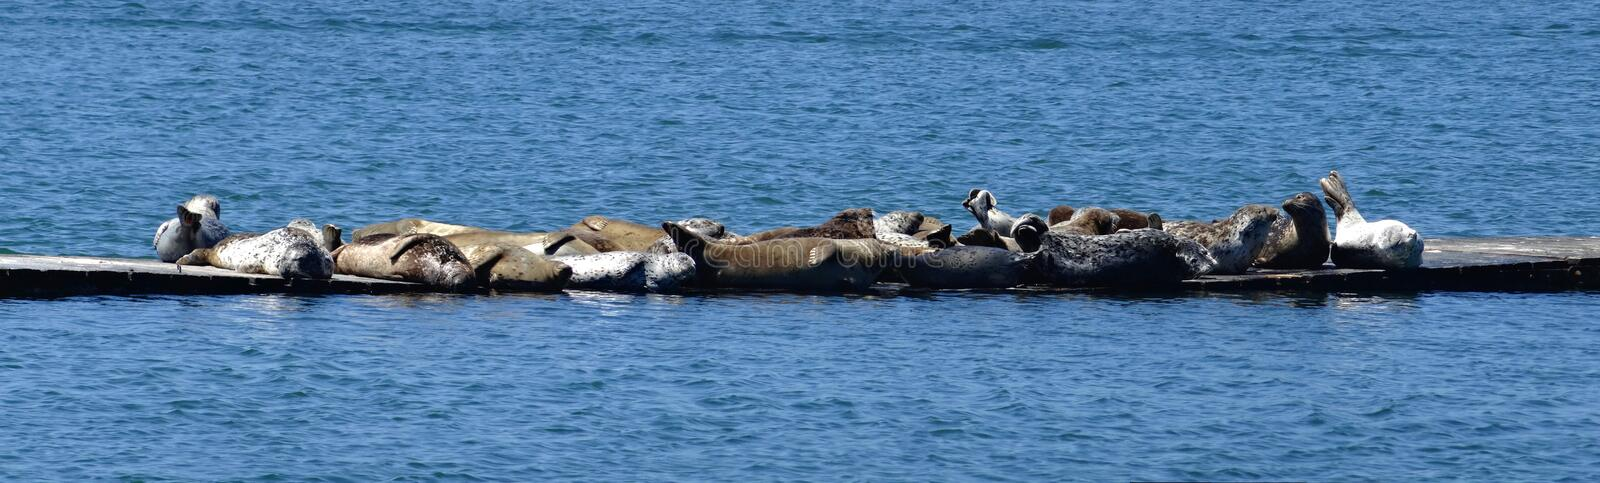 Harbor seals assembled in a small group of mixed colors on a floating jetty stock image